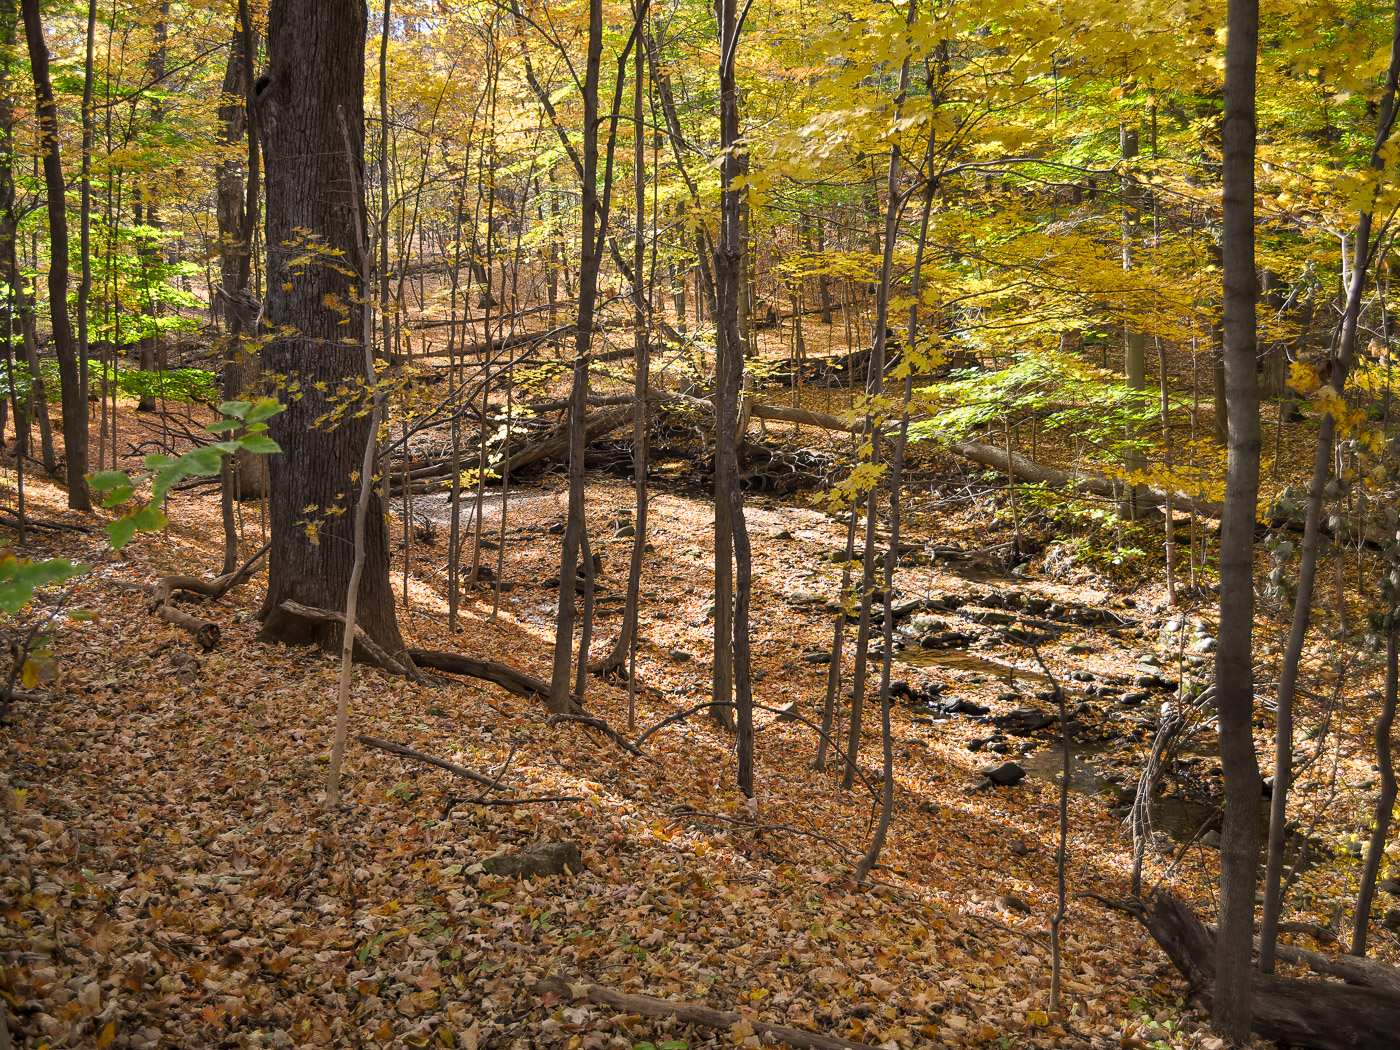 A healthy woodland ecosystem relies on the natural recycling of its leaves.